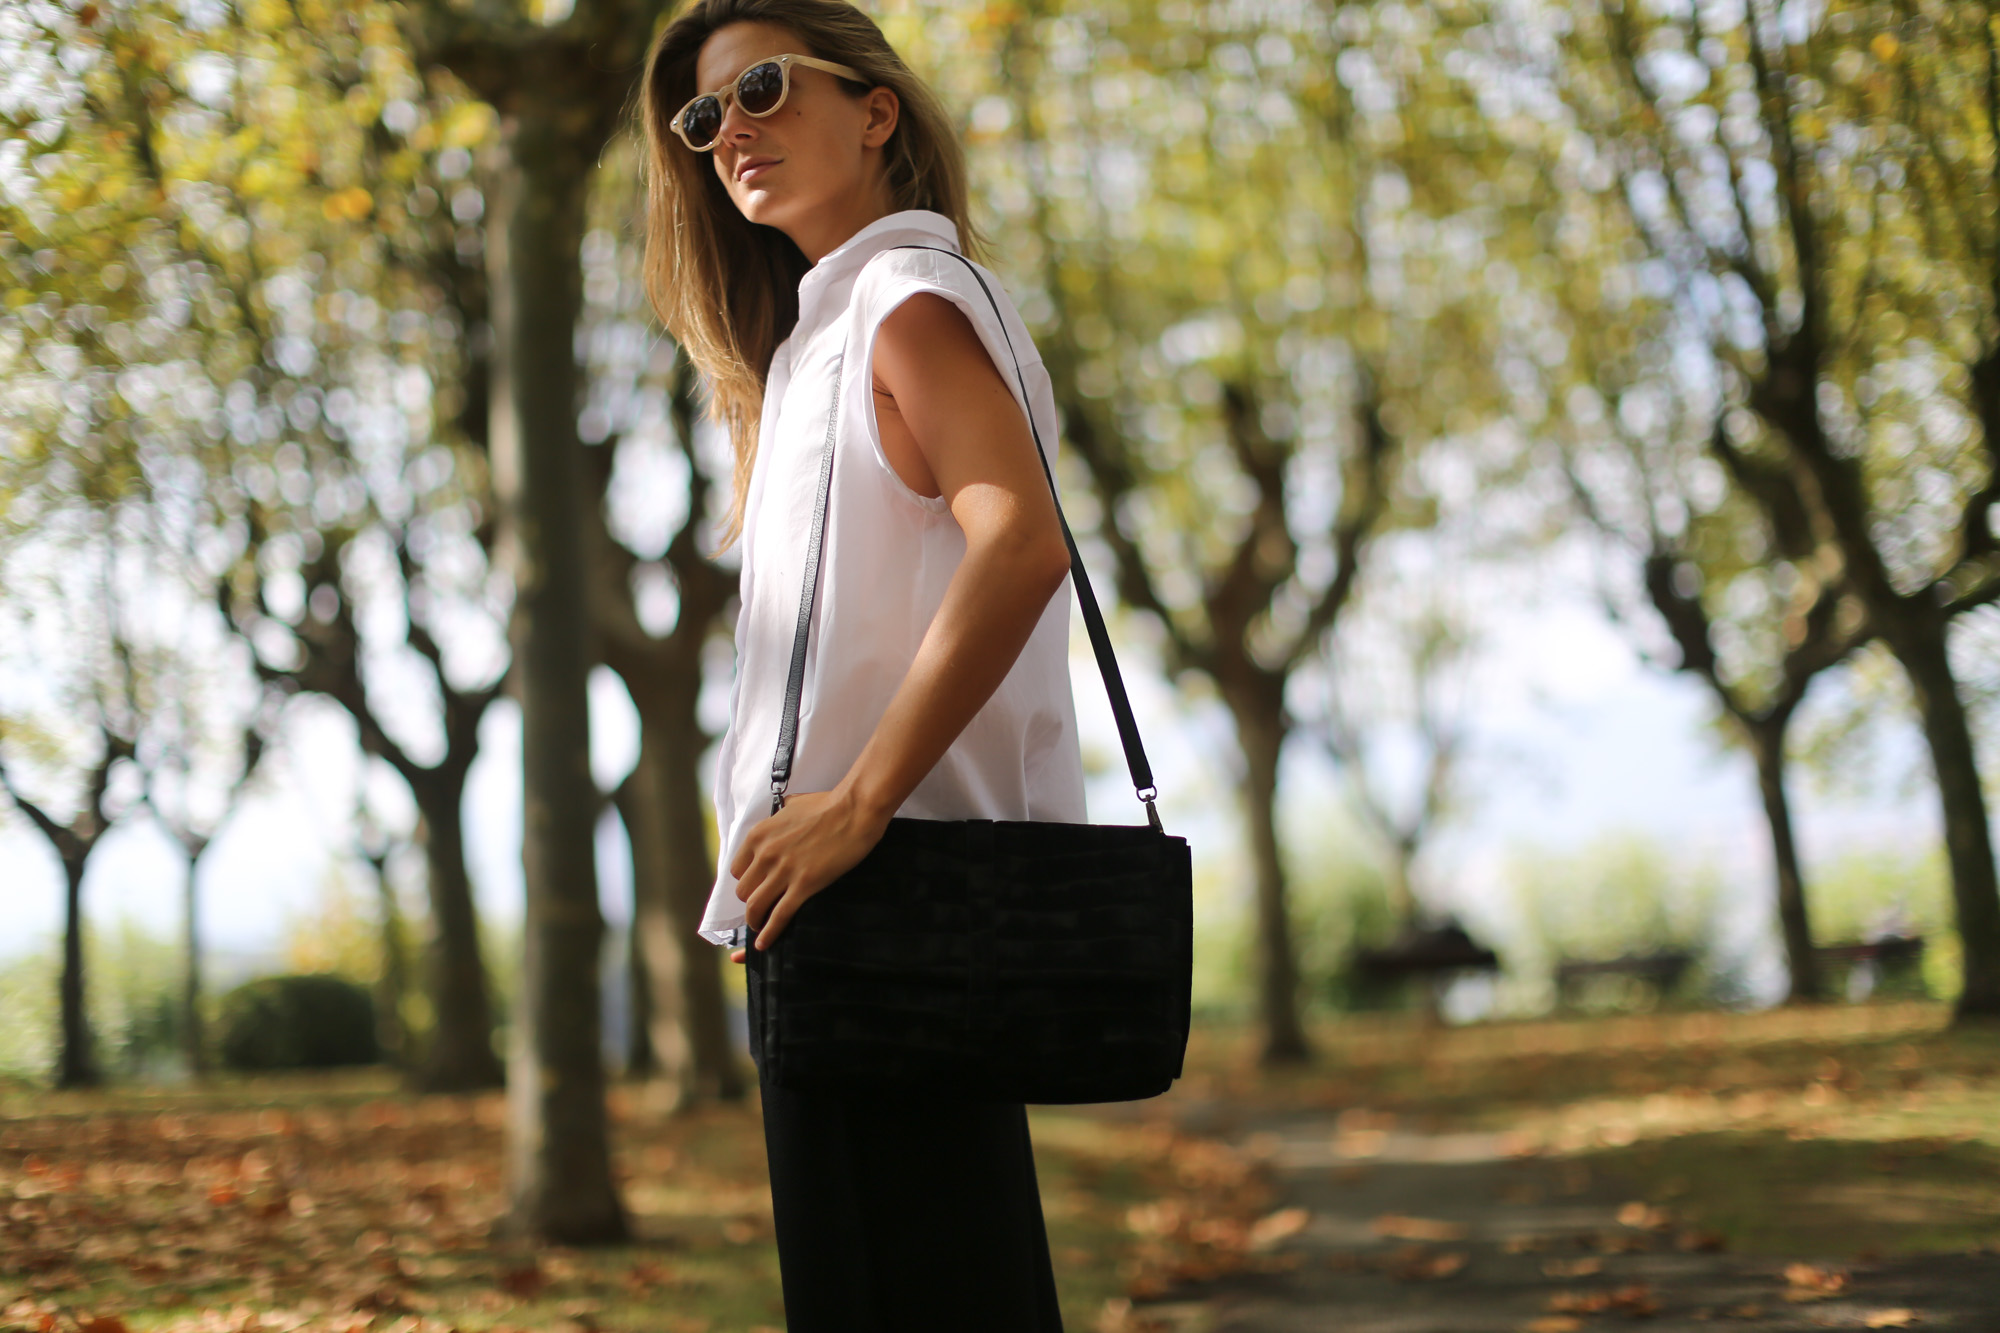 Clochet-streetstyle-zara-white-structured-shirt-culottes-everie-cph-13